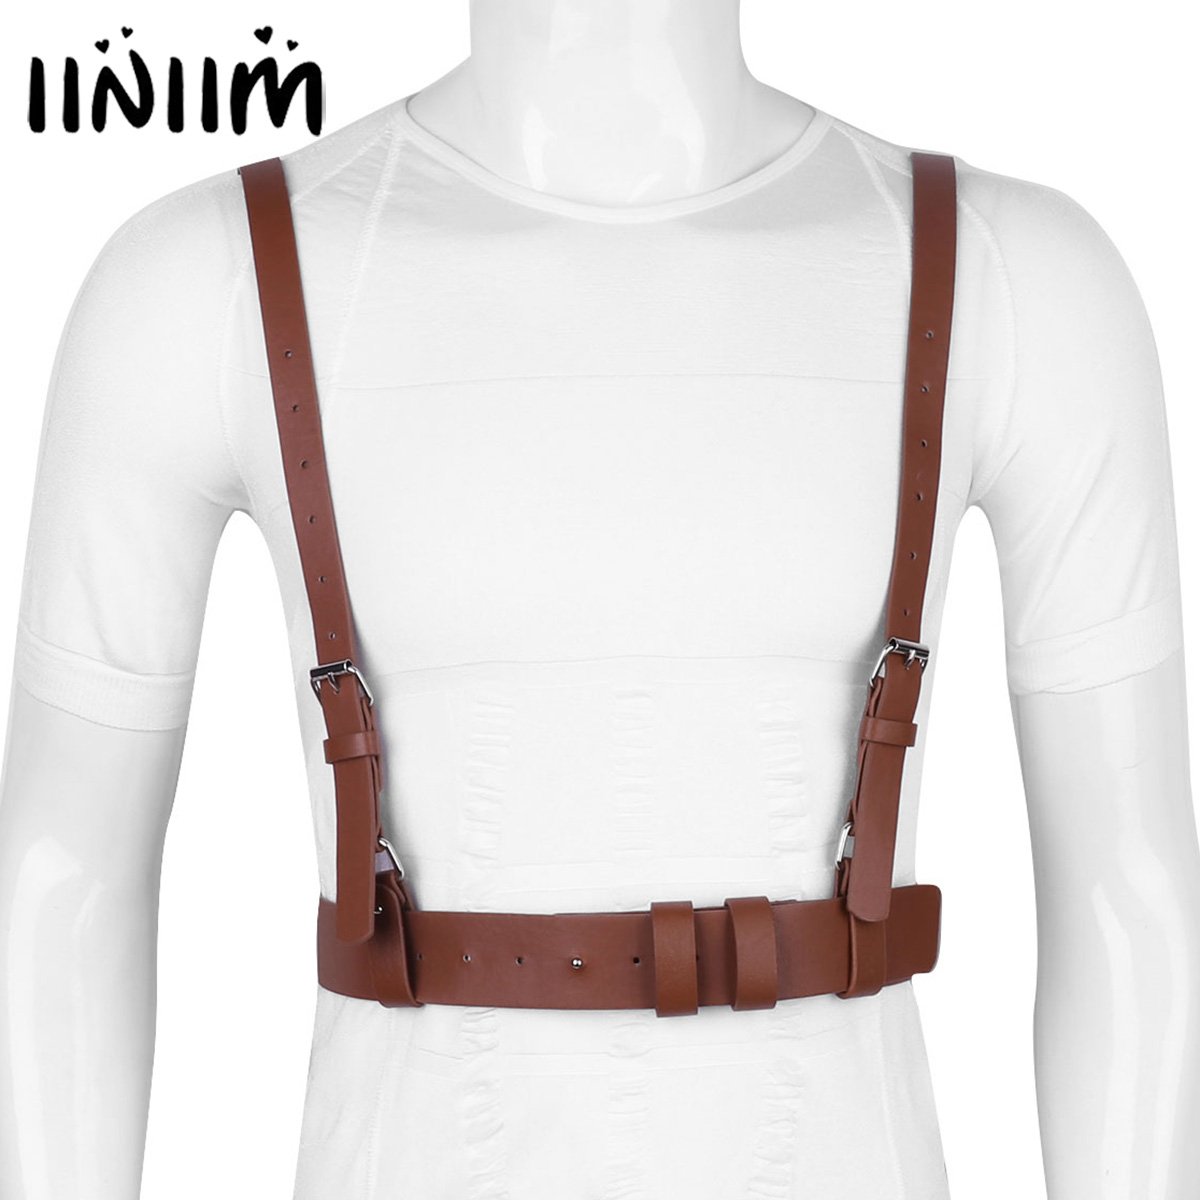 Adult Punk PU Leather Clubwear Party Body Bondage Adjustable Y/H-shape Body Waist Harness Belt Roleplay Costume Clubwear